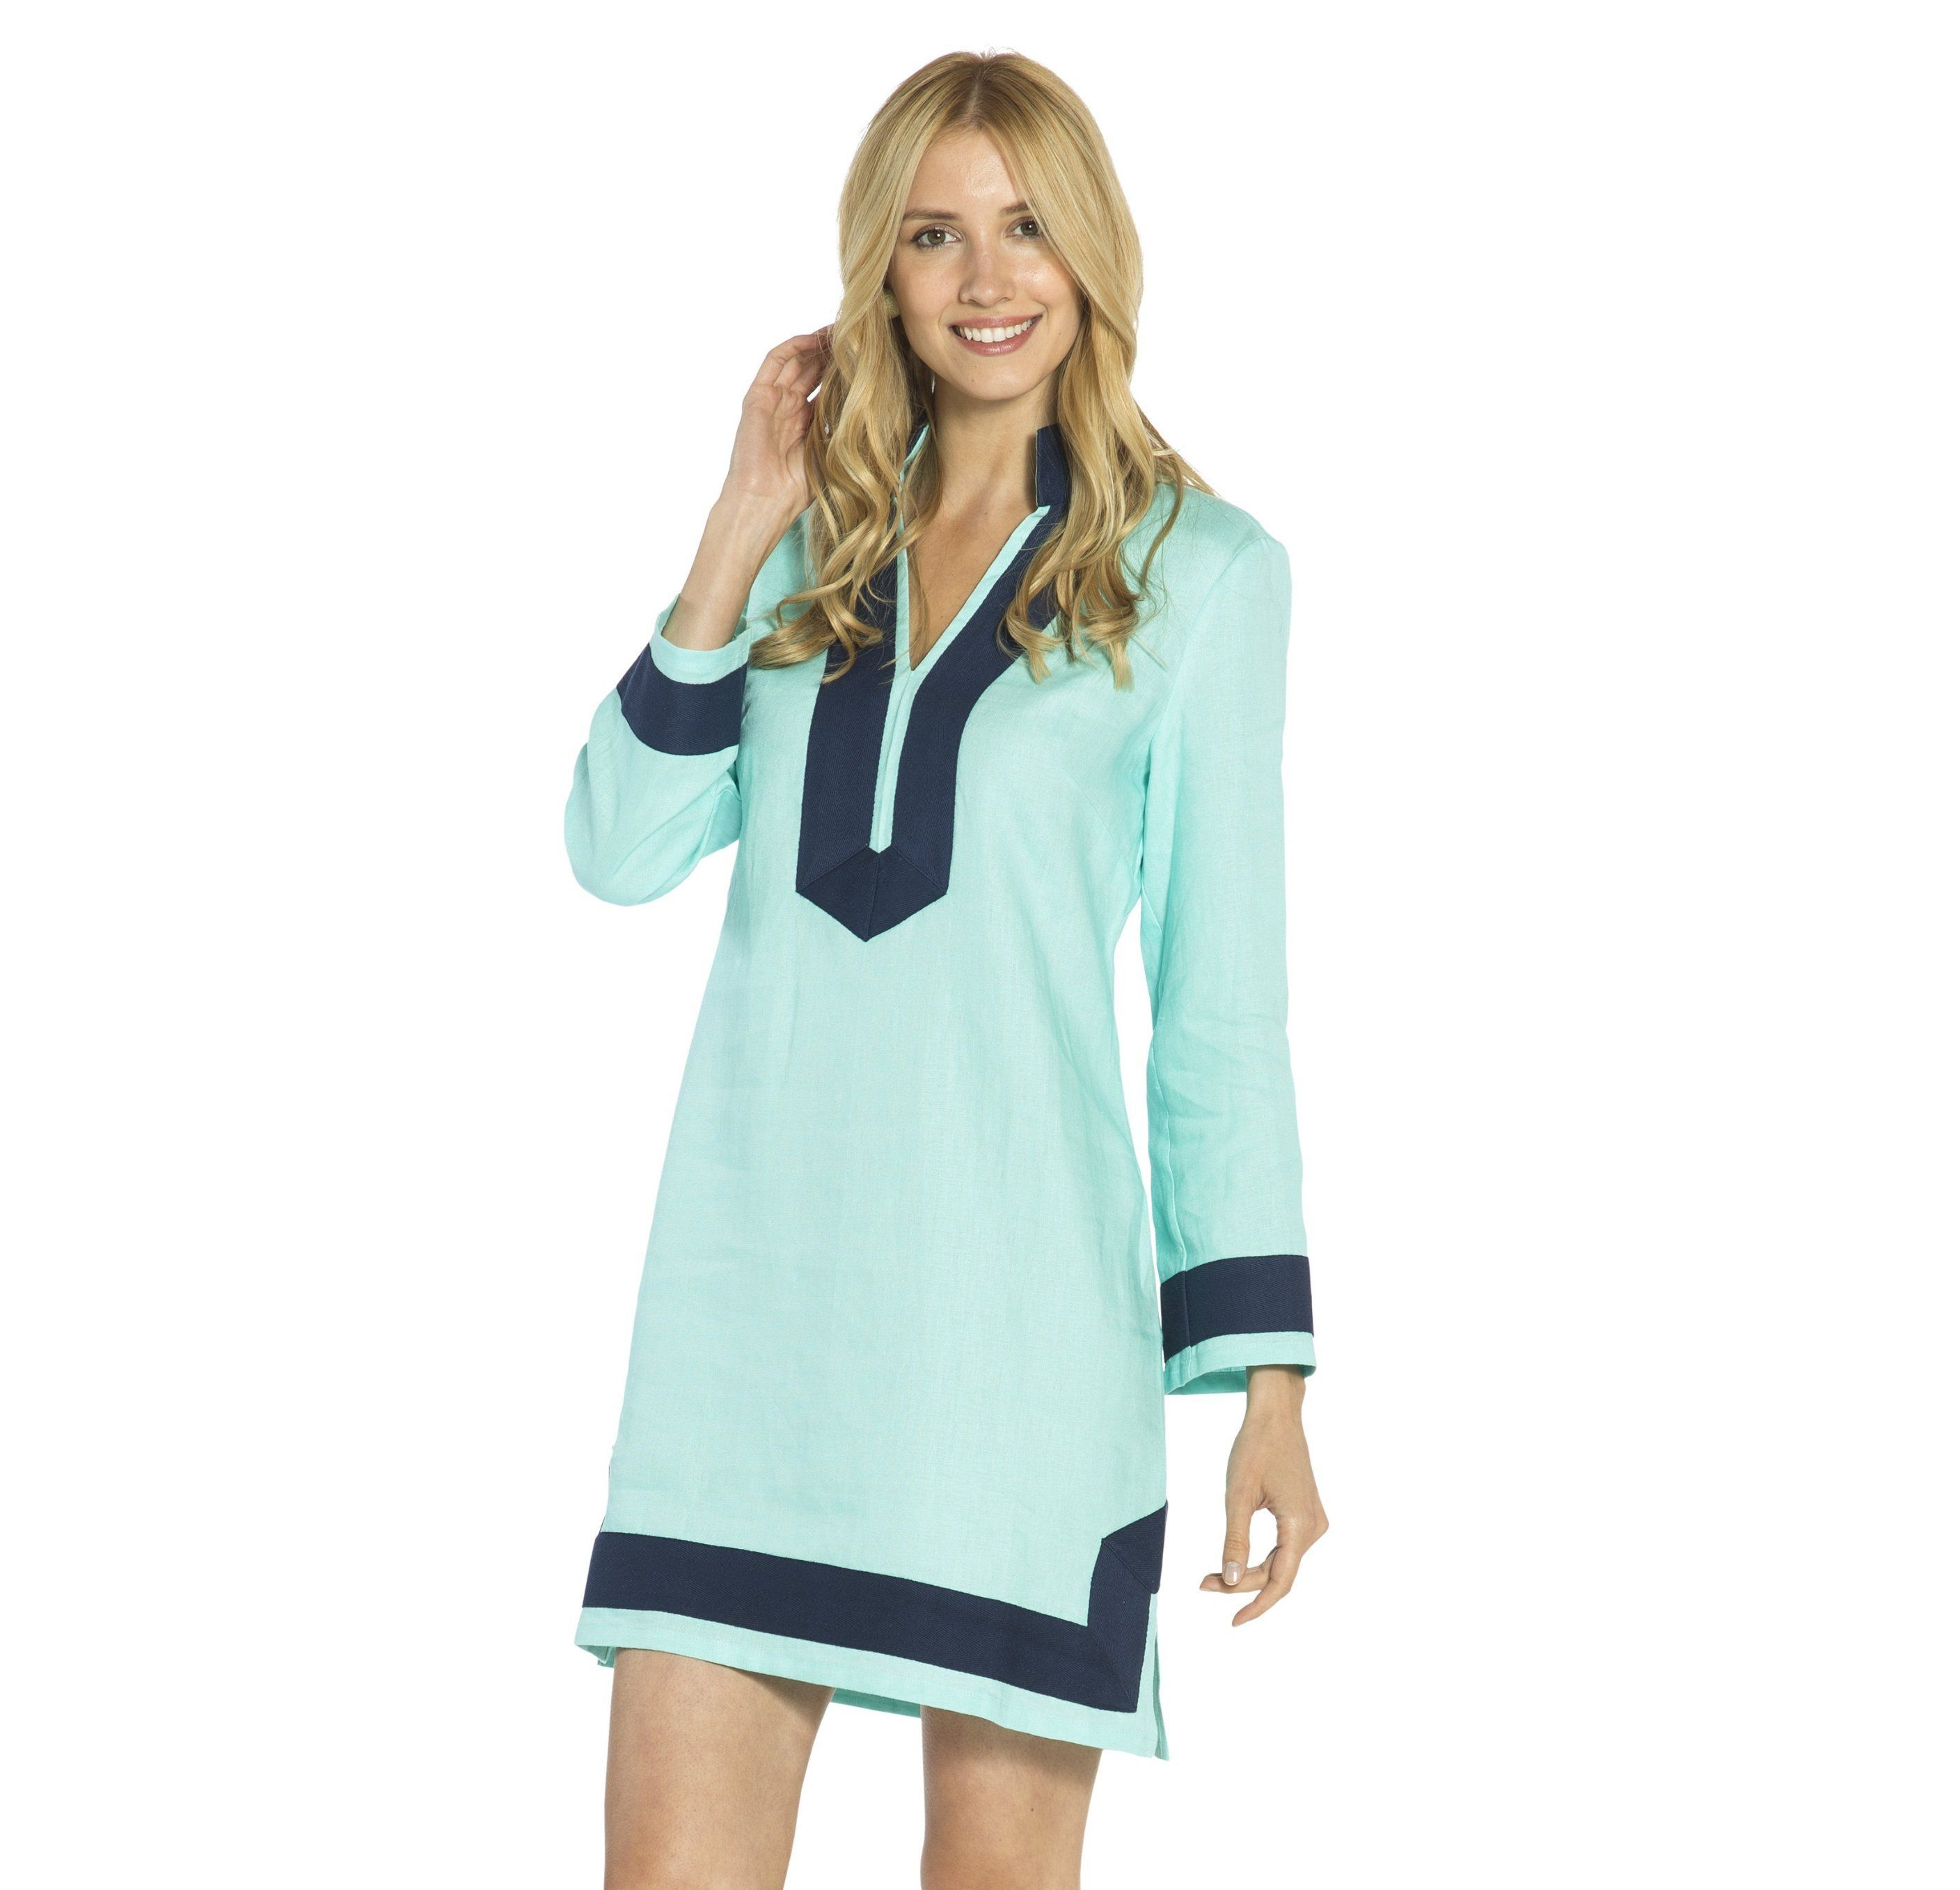 0677f43a52 Sail to Sable Classic Tunic With Sleeves - Aqua Navy